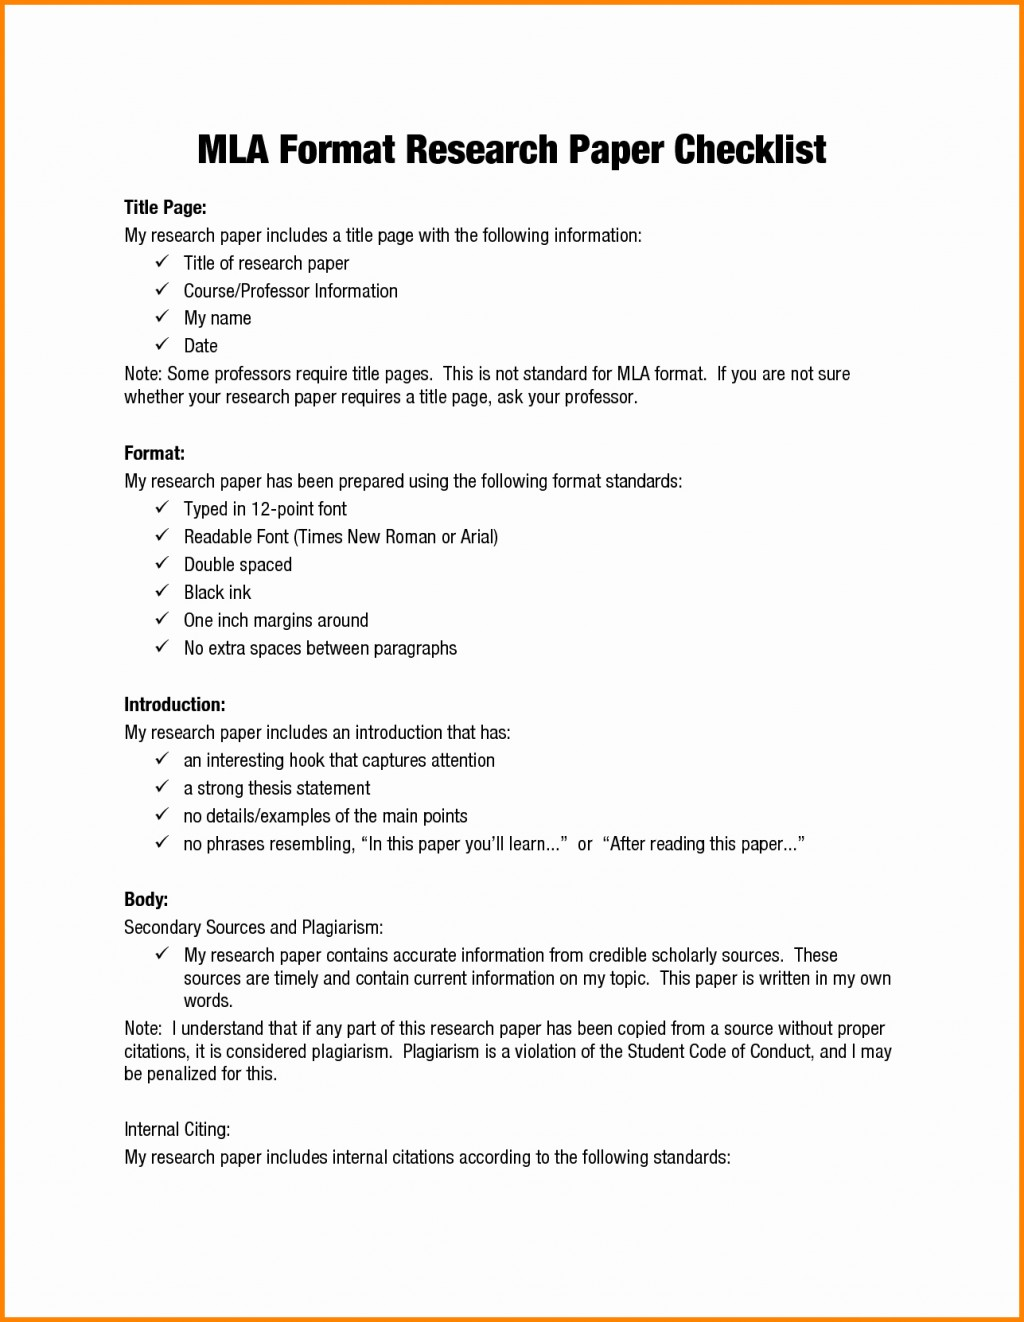 009 Research Paper Mla Style Format Inspirational Sample Titles Bamboodownunder Of Cover Singular Page Title Example With Large